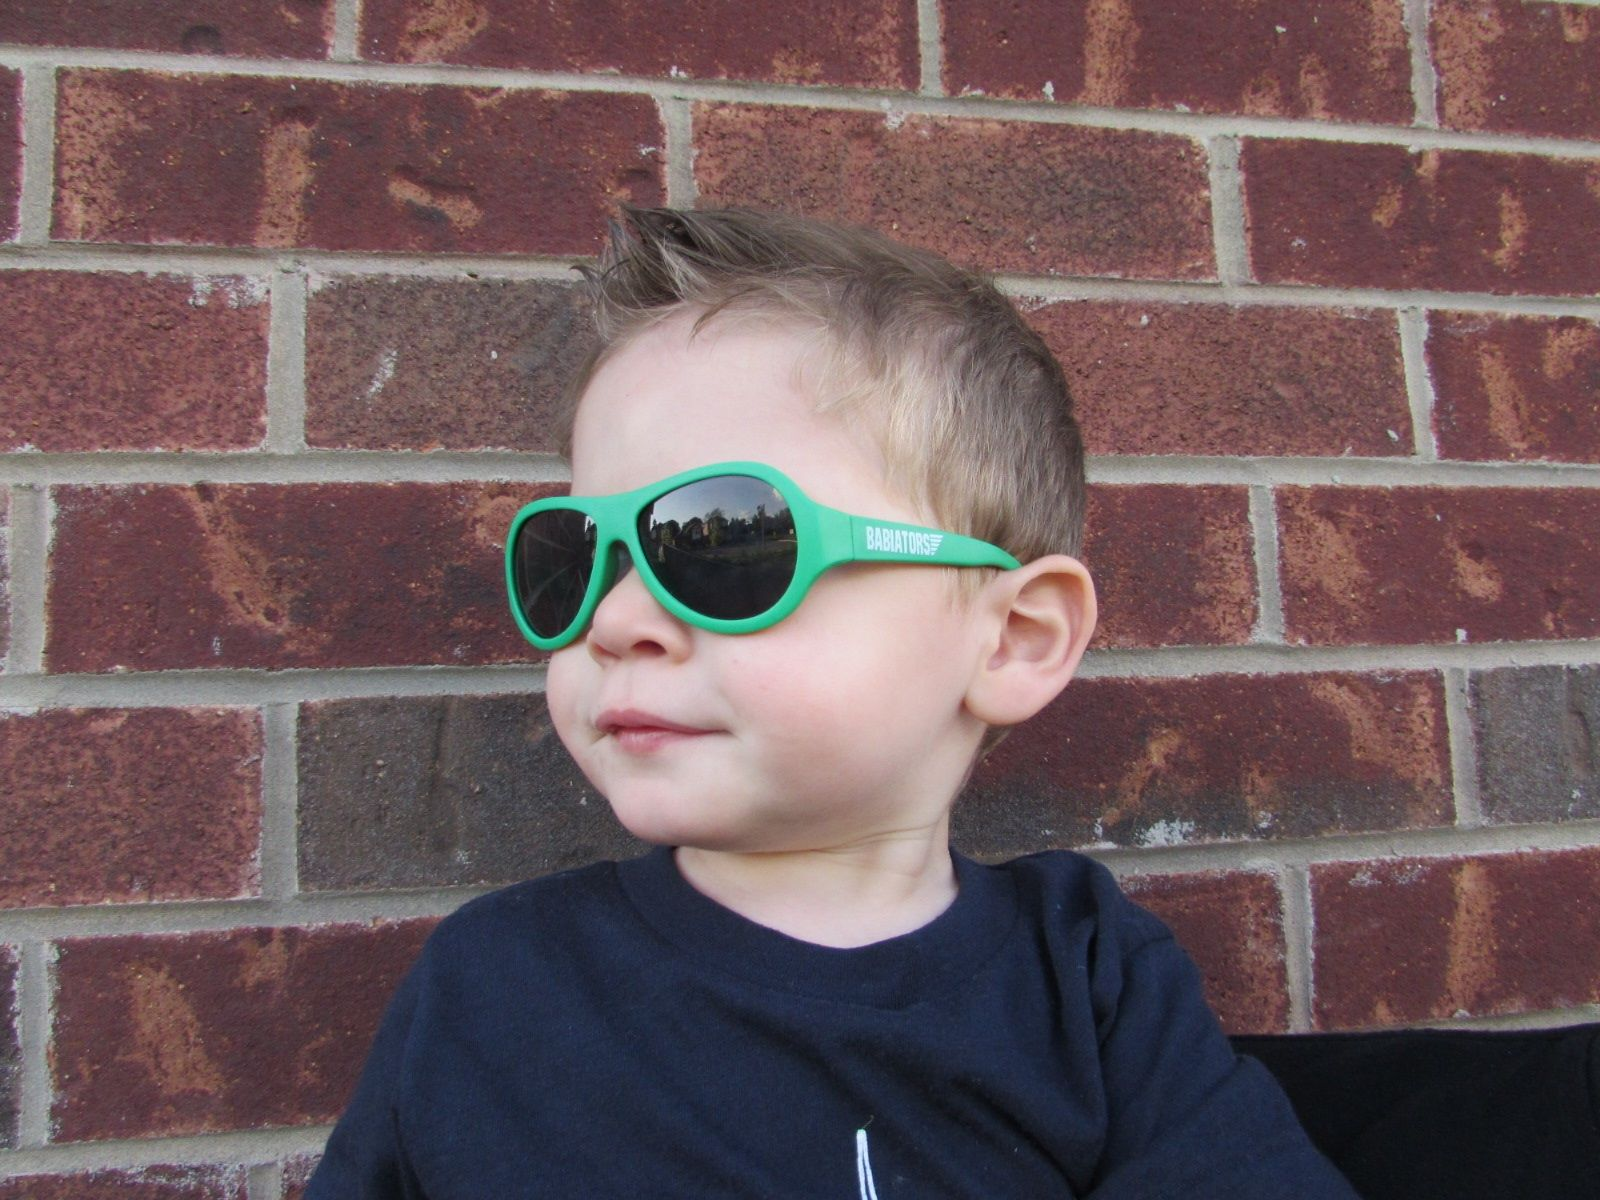 Babiators Review Sparkleshinylove True Blue Classic Ages 3 7 Sunglasses Children 6 Months To Years And Which Fit Most From Londons Go Time Green Were Size Junior